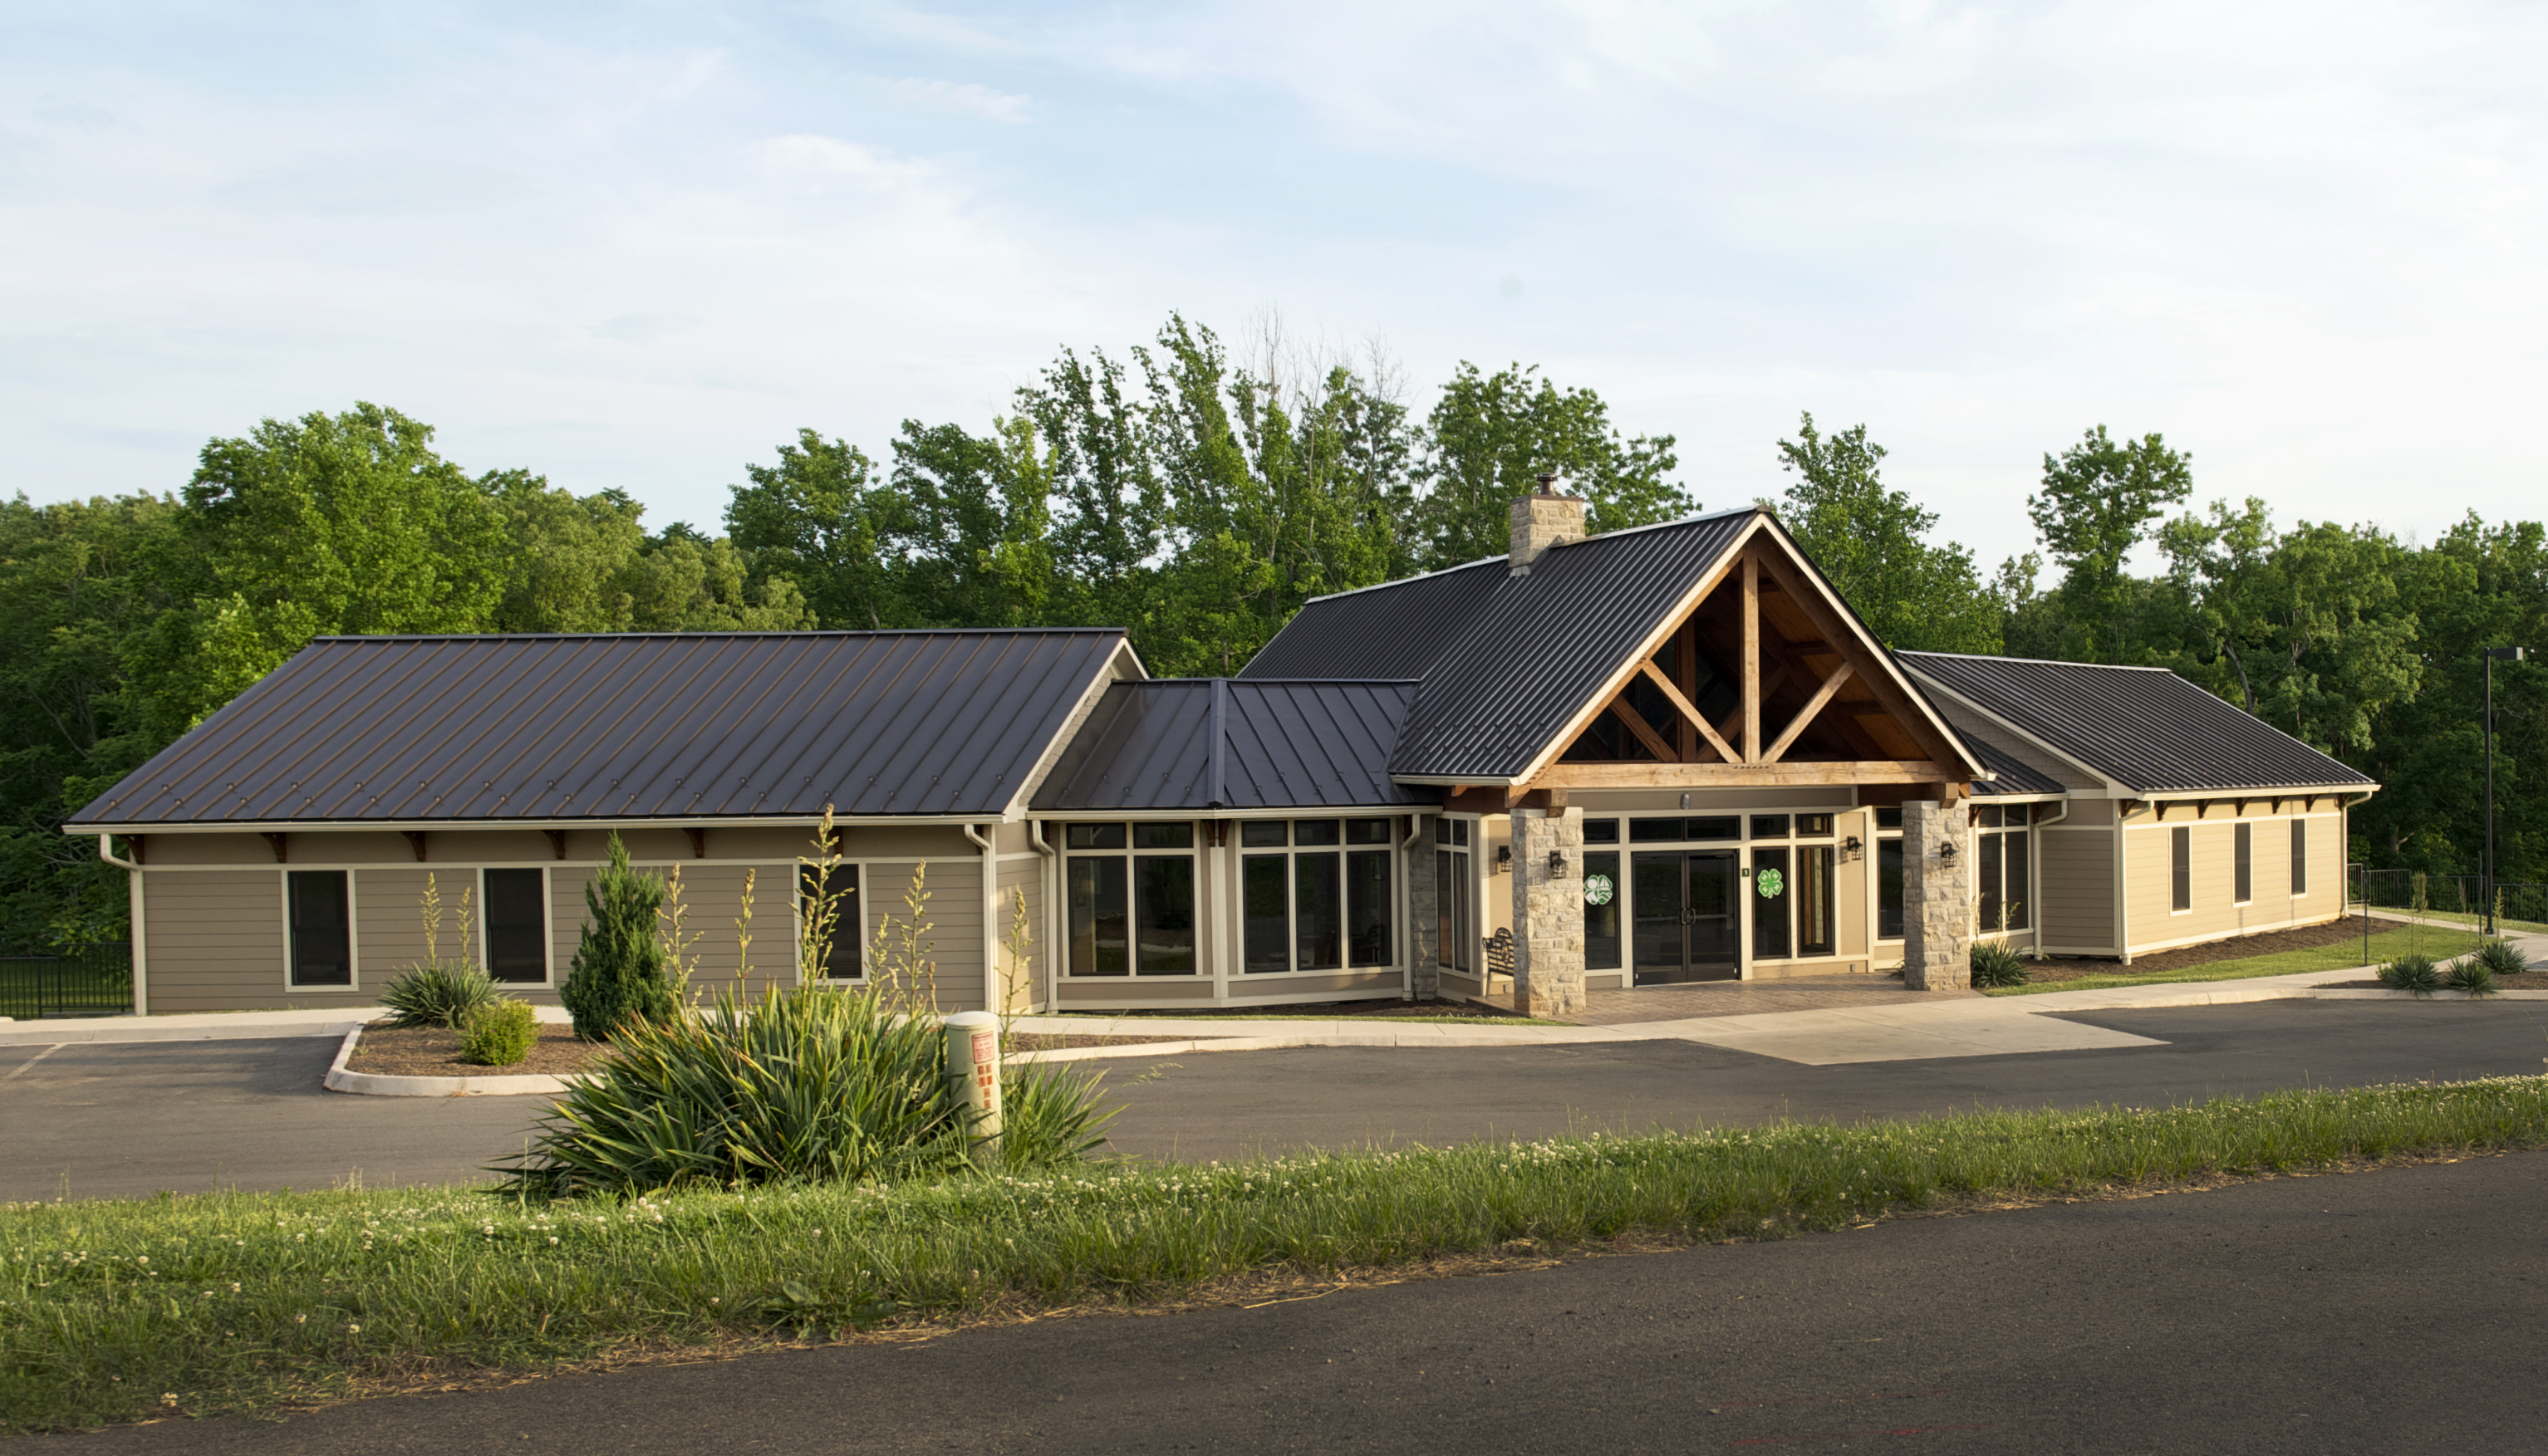 Photograph of the Hahn Welcome Center at the W.E. Skelton 4-H Educational Conference Center at Smith Mountain Lake